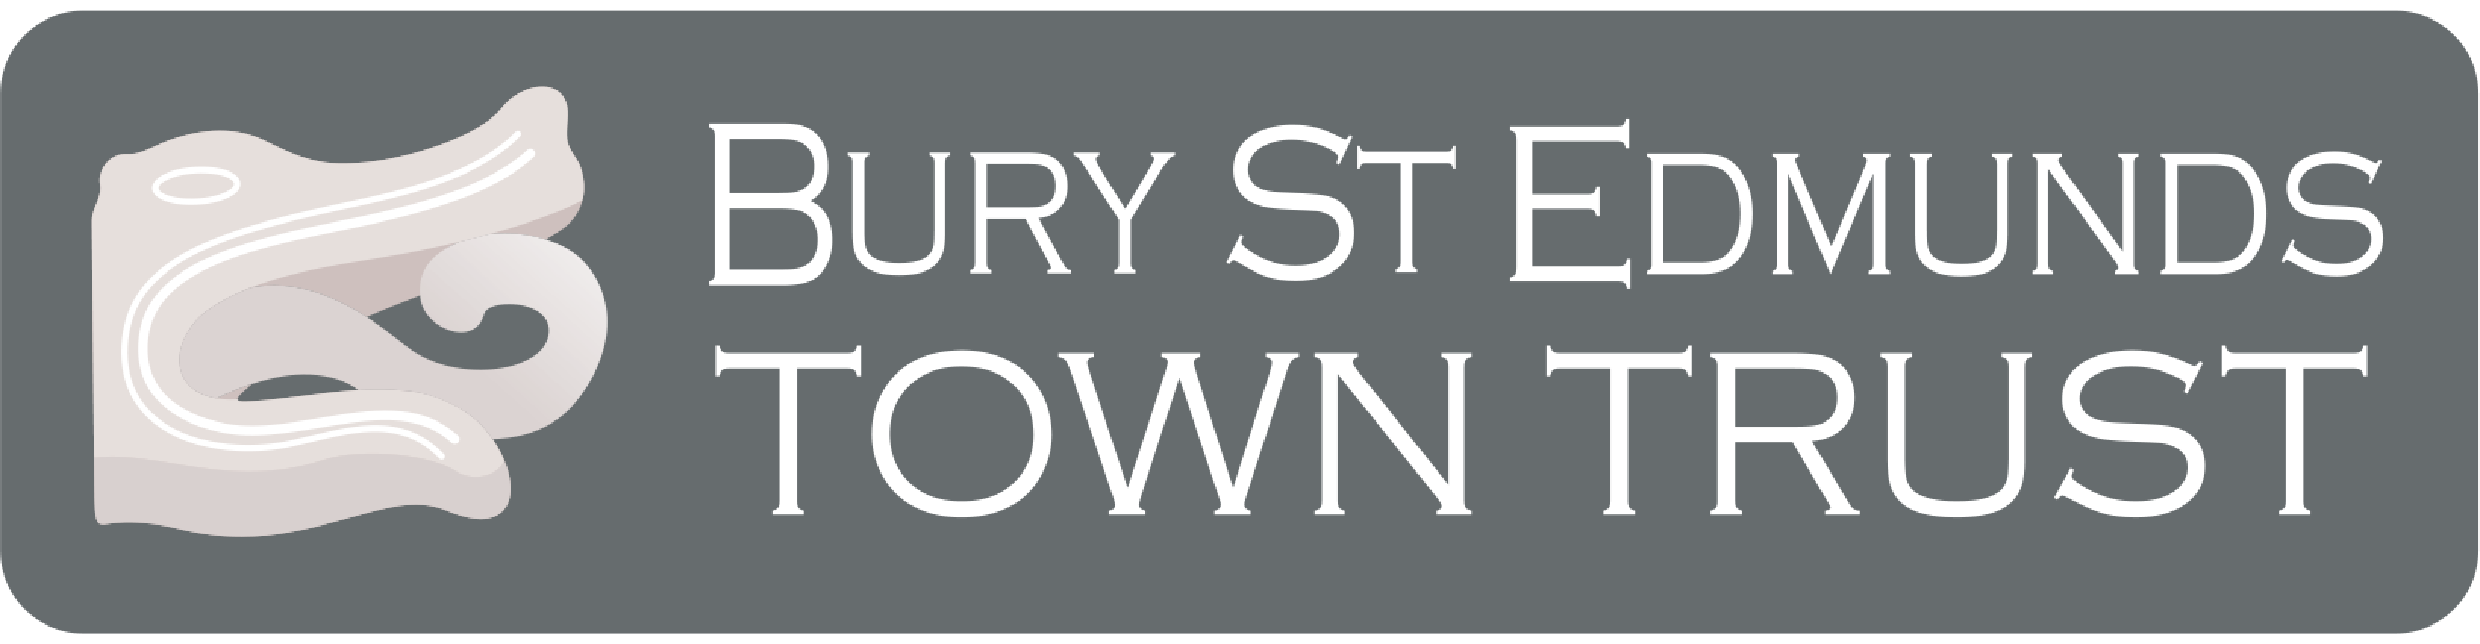 Bury Town Trust - A5 png LOGO - 22.05.20